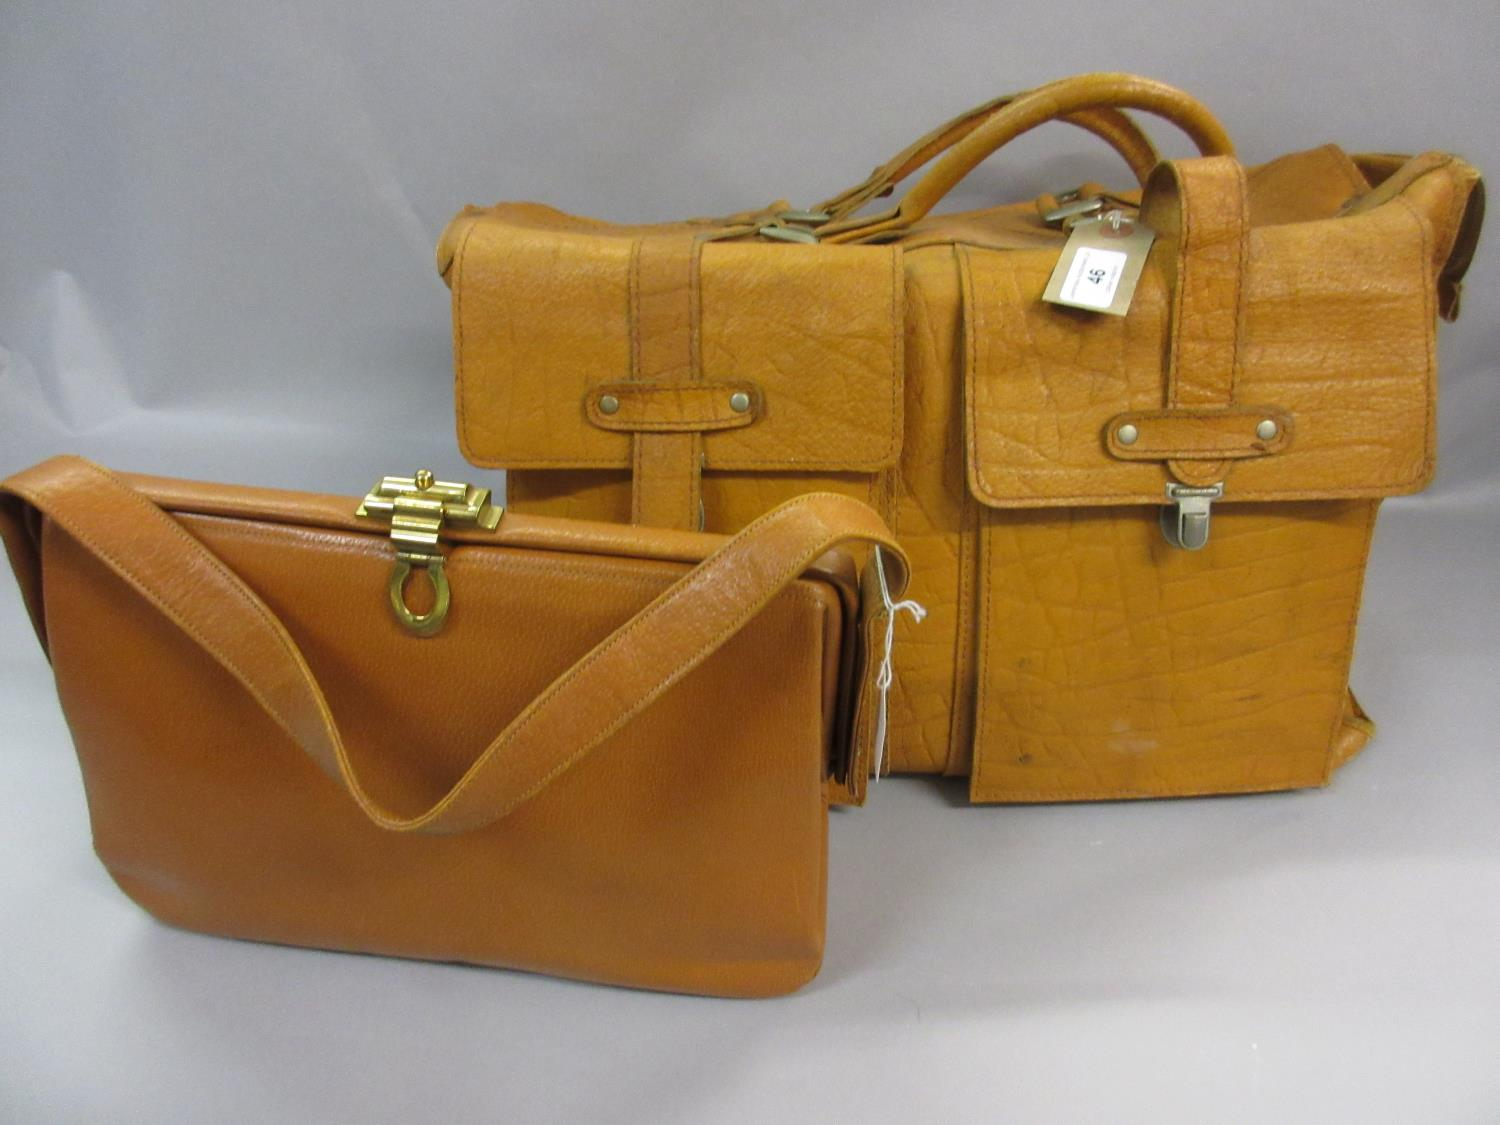 Lot 46 - Tan leather holdall together with a tan 1950 / 60's handbag, The Voyager